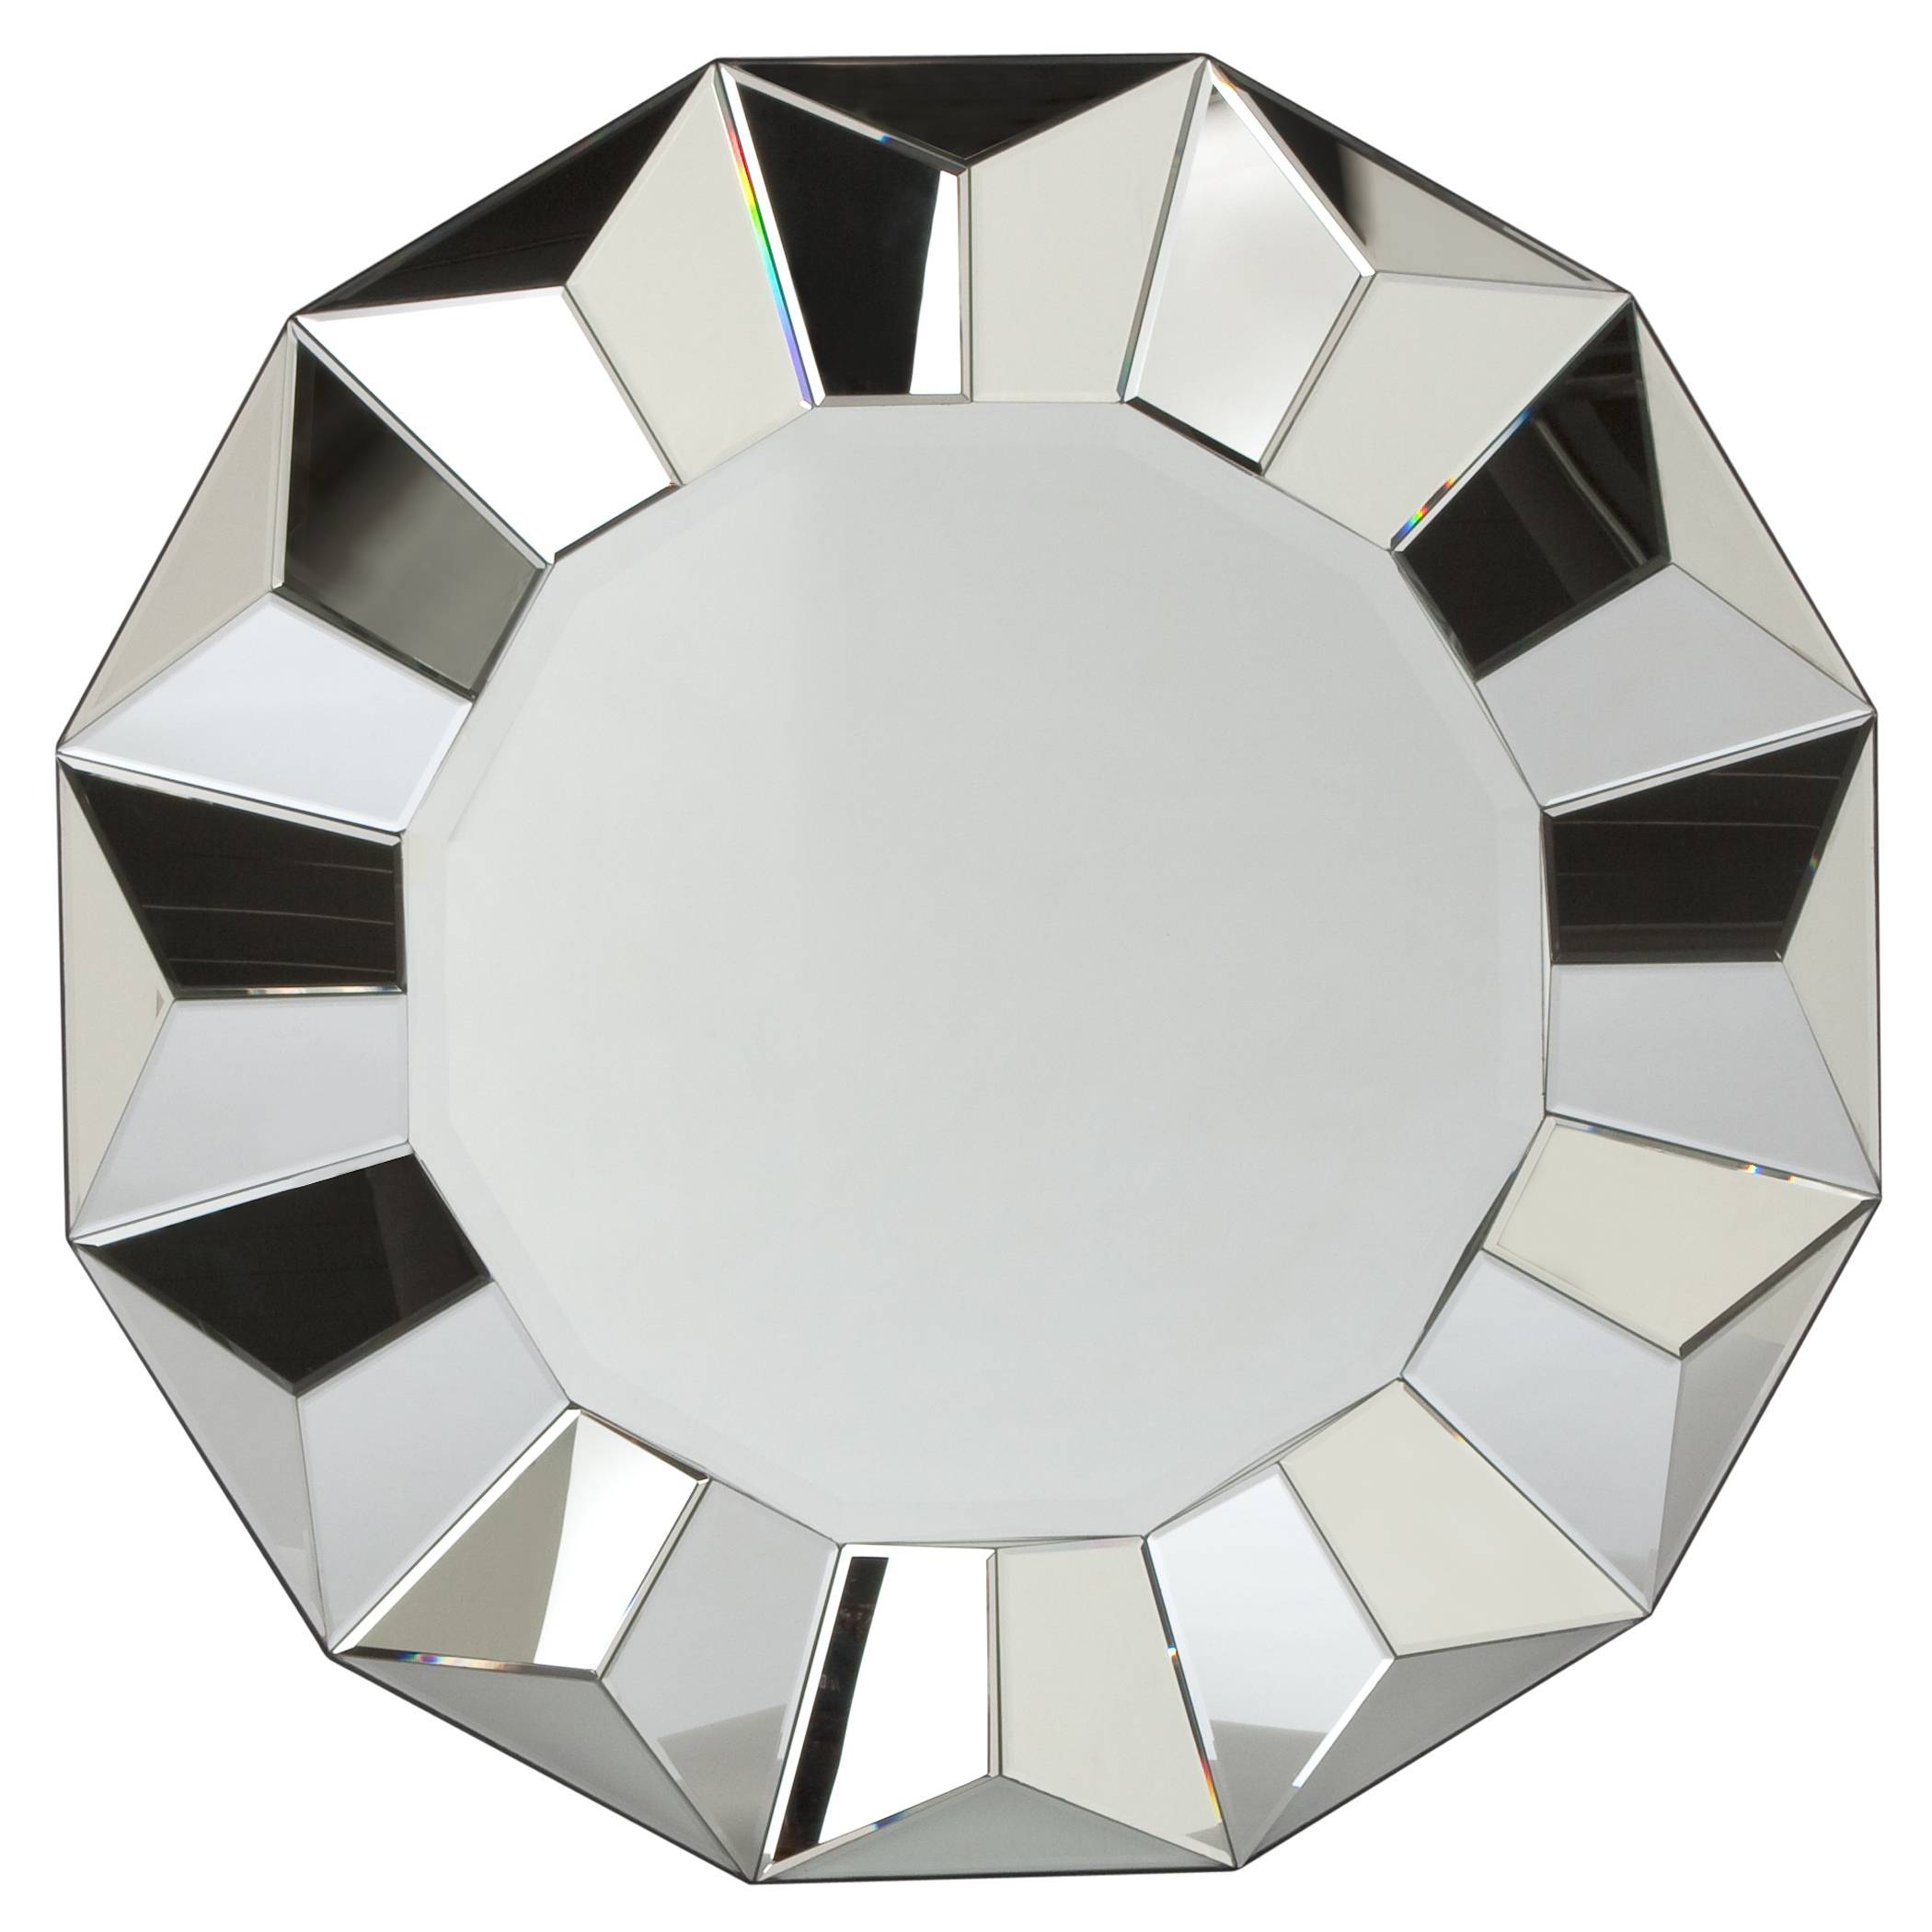 A faceted Portico mirror would make a dramatic statement over a mantel or in an entryway.